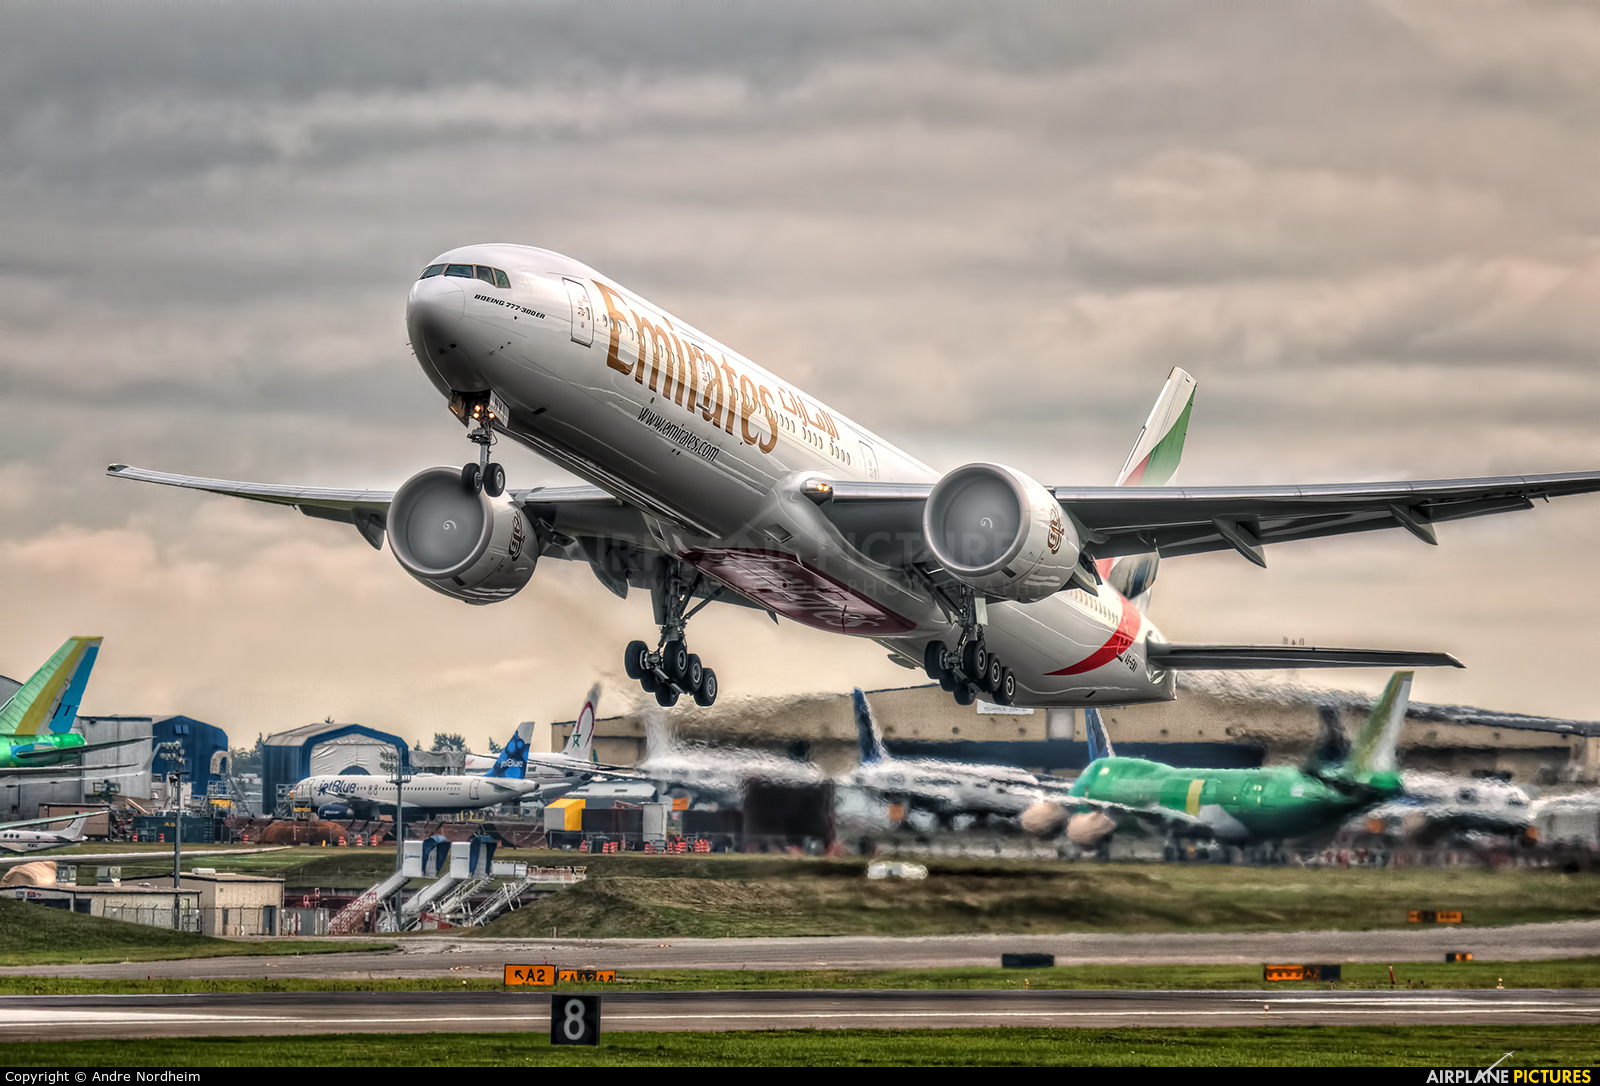 Emirates Airlines A6-ENV aircraft at Everett - Snohomish County / Paine Field